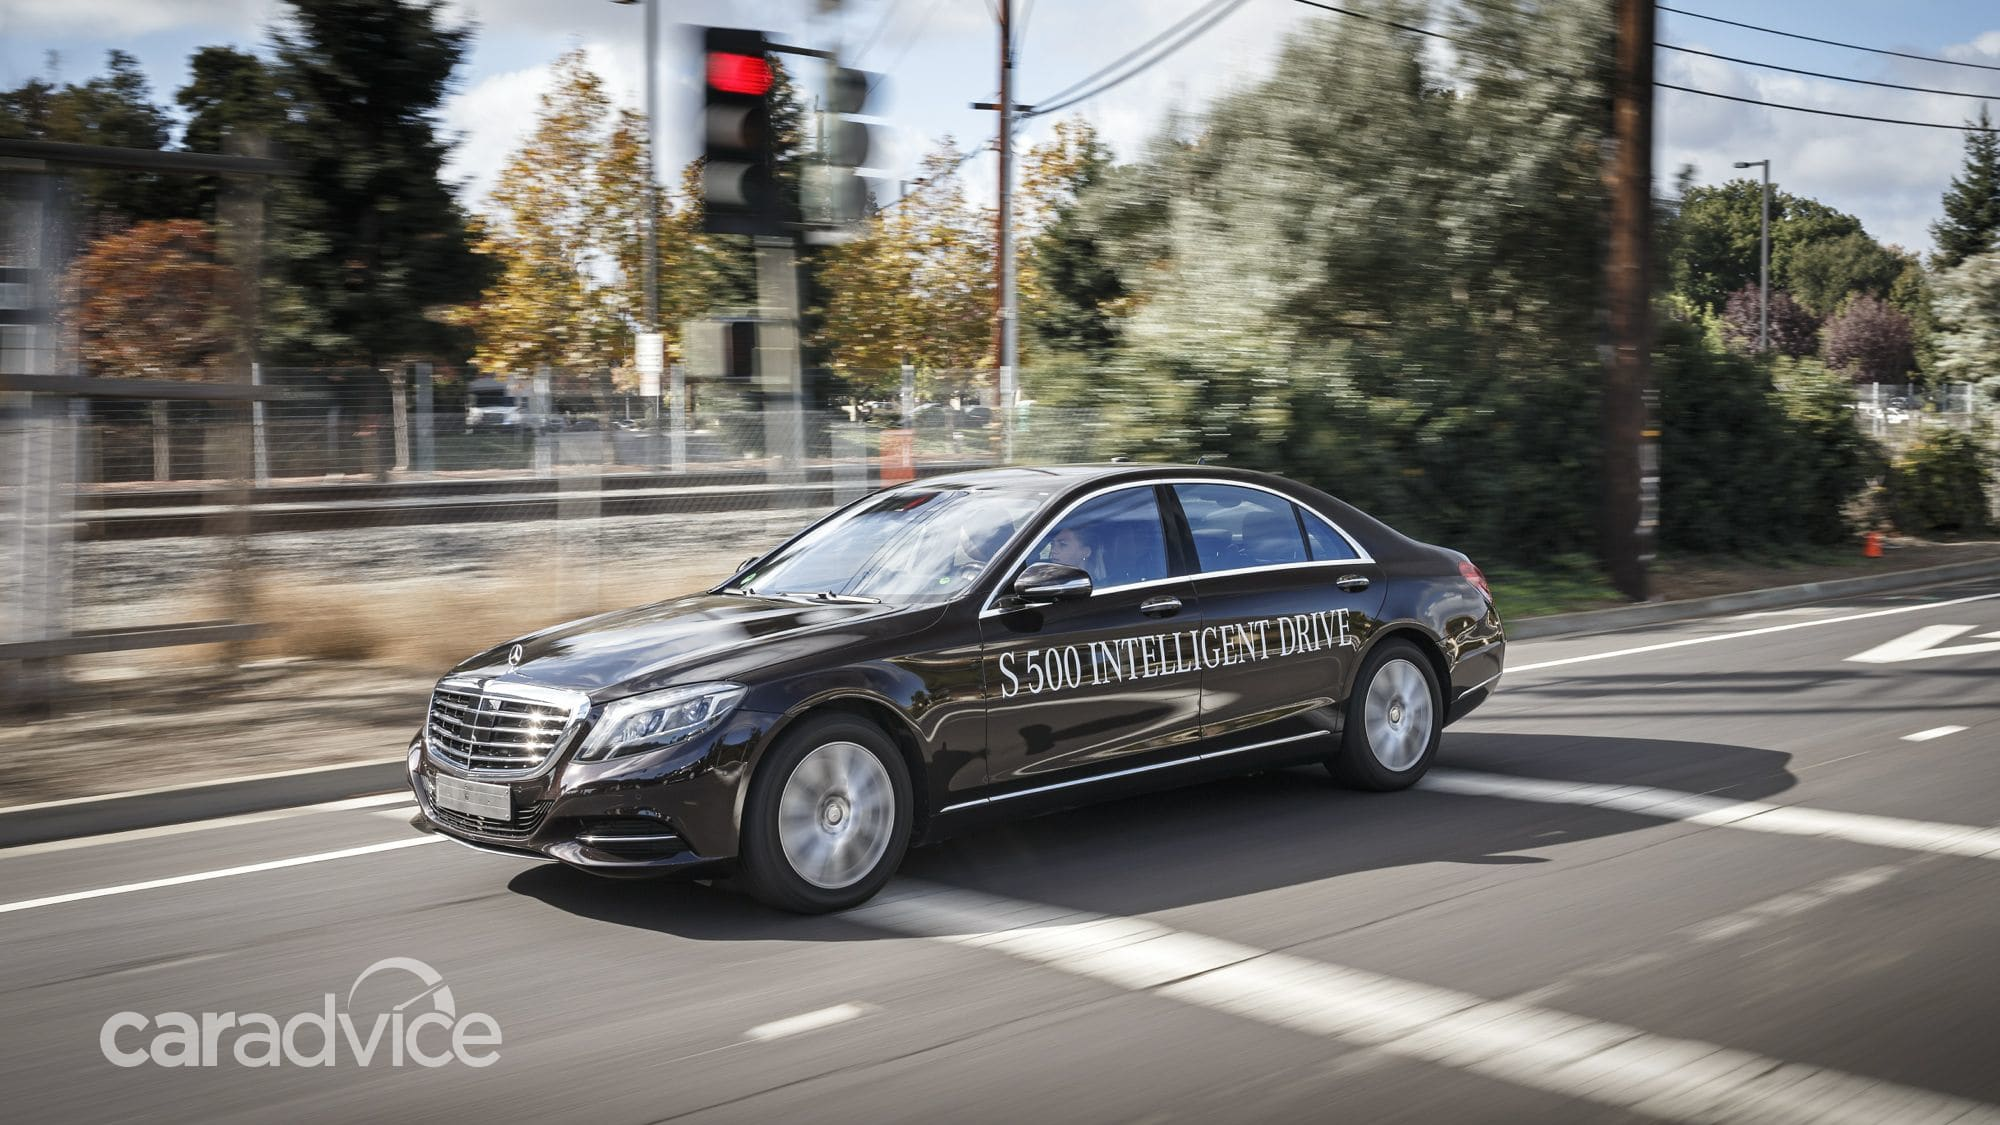 Mercedes-Benz: More cooperation needed on autonomous cars ...